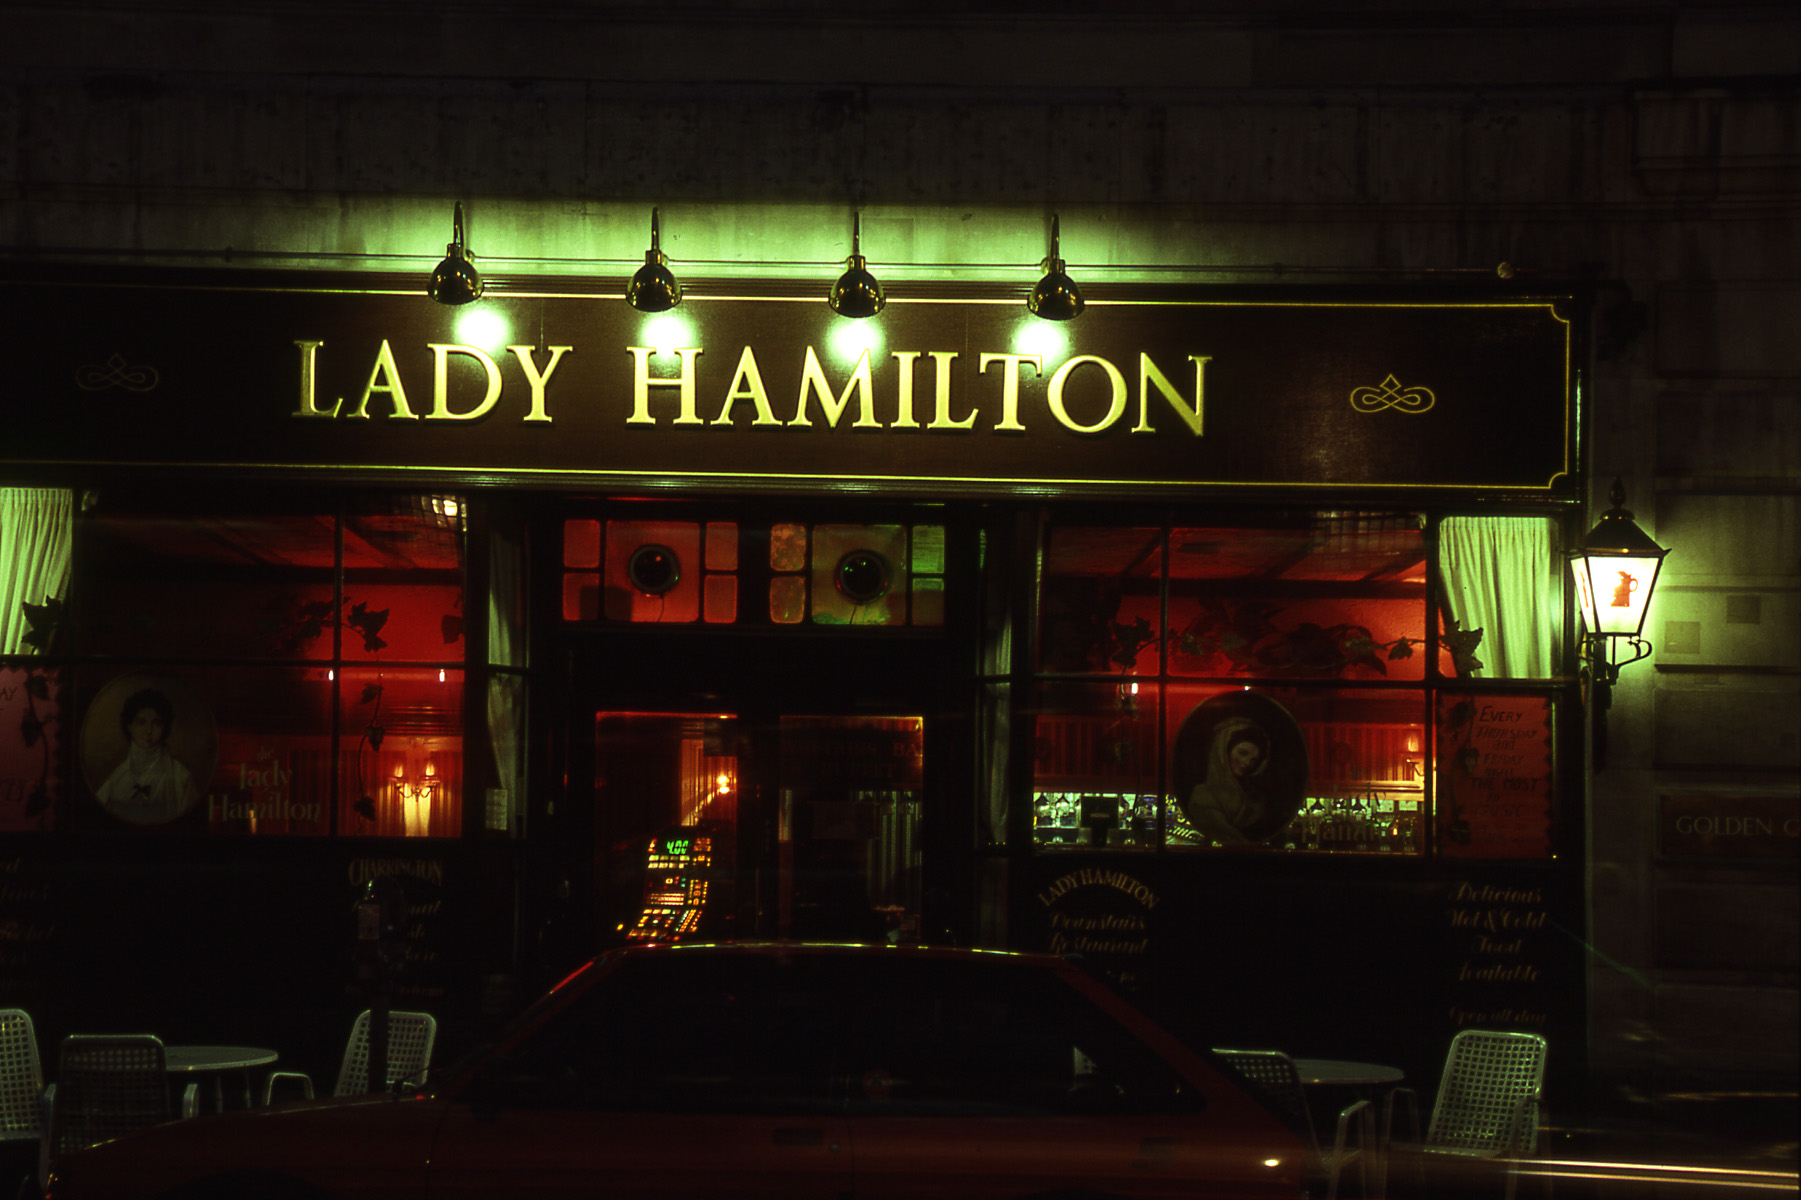 The Lady Hamilton - London 1989